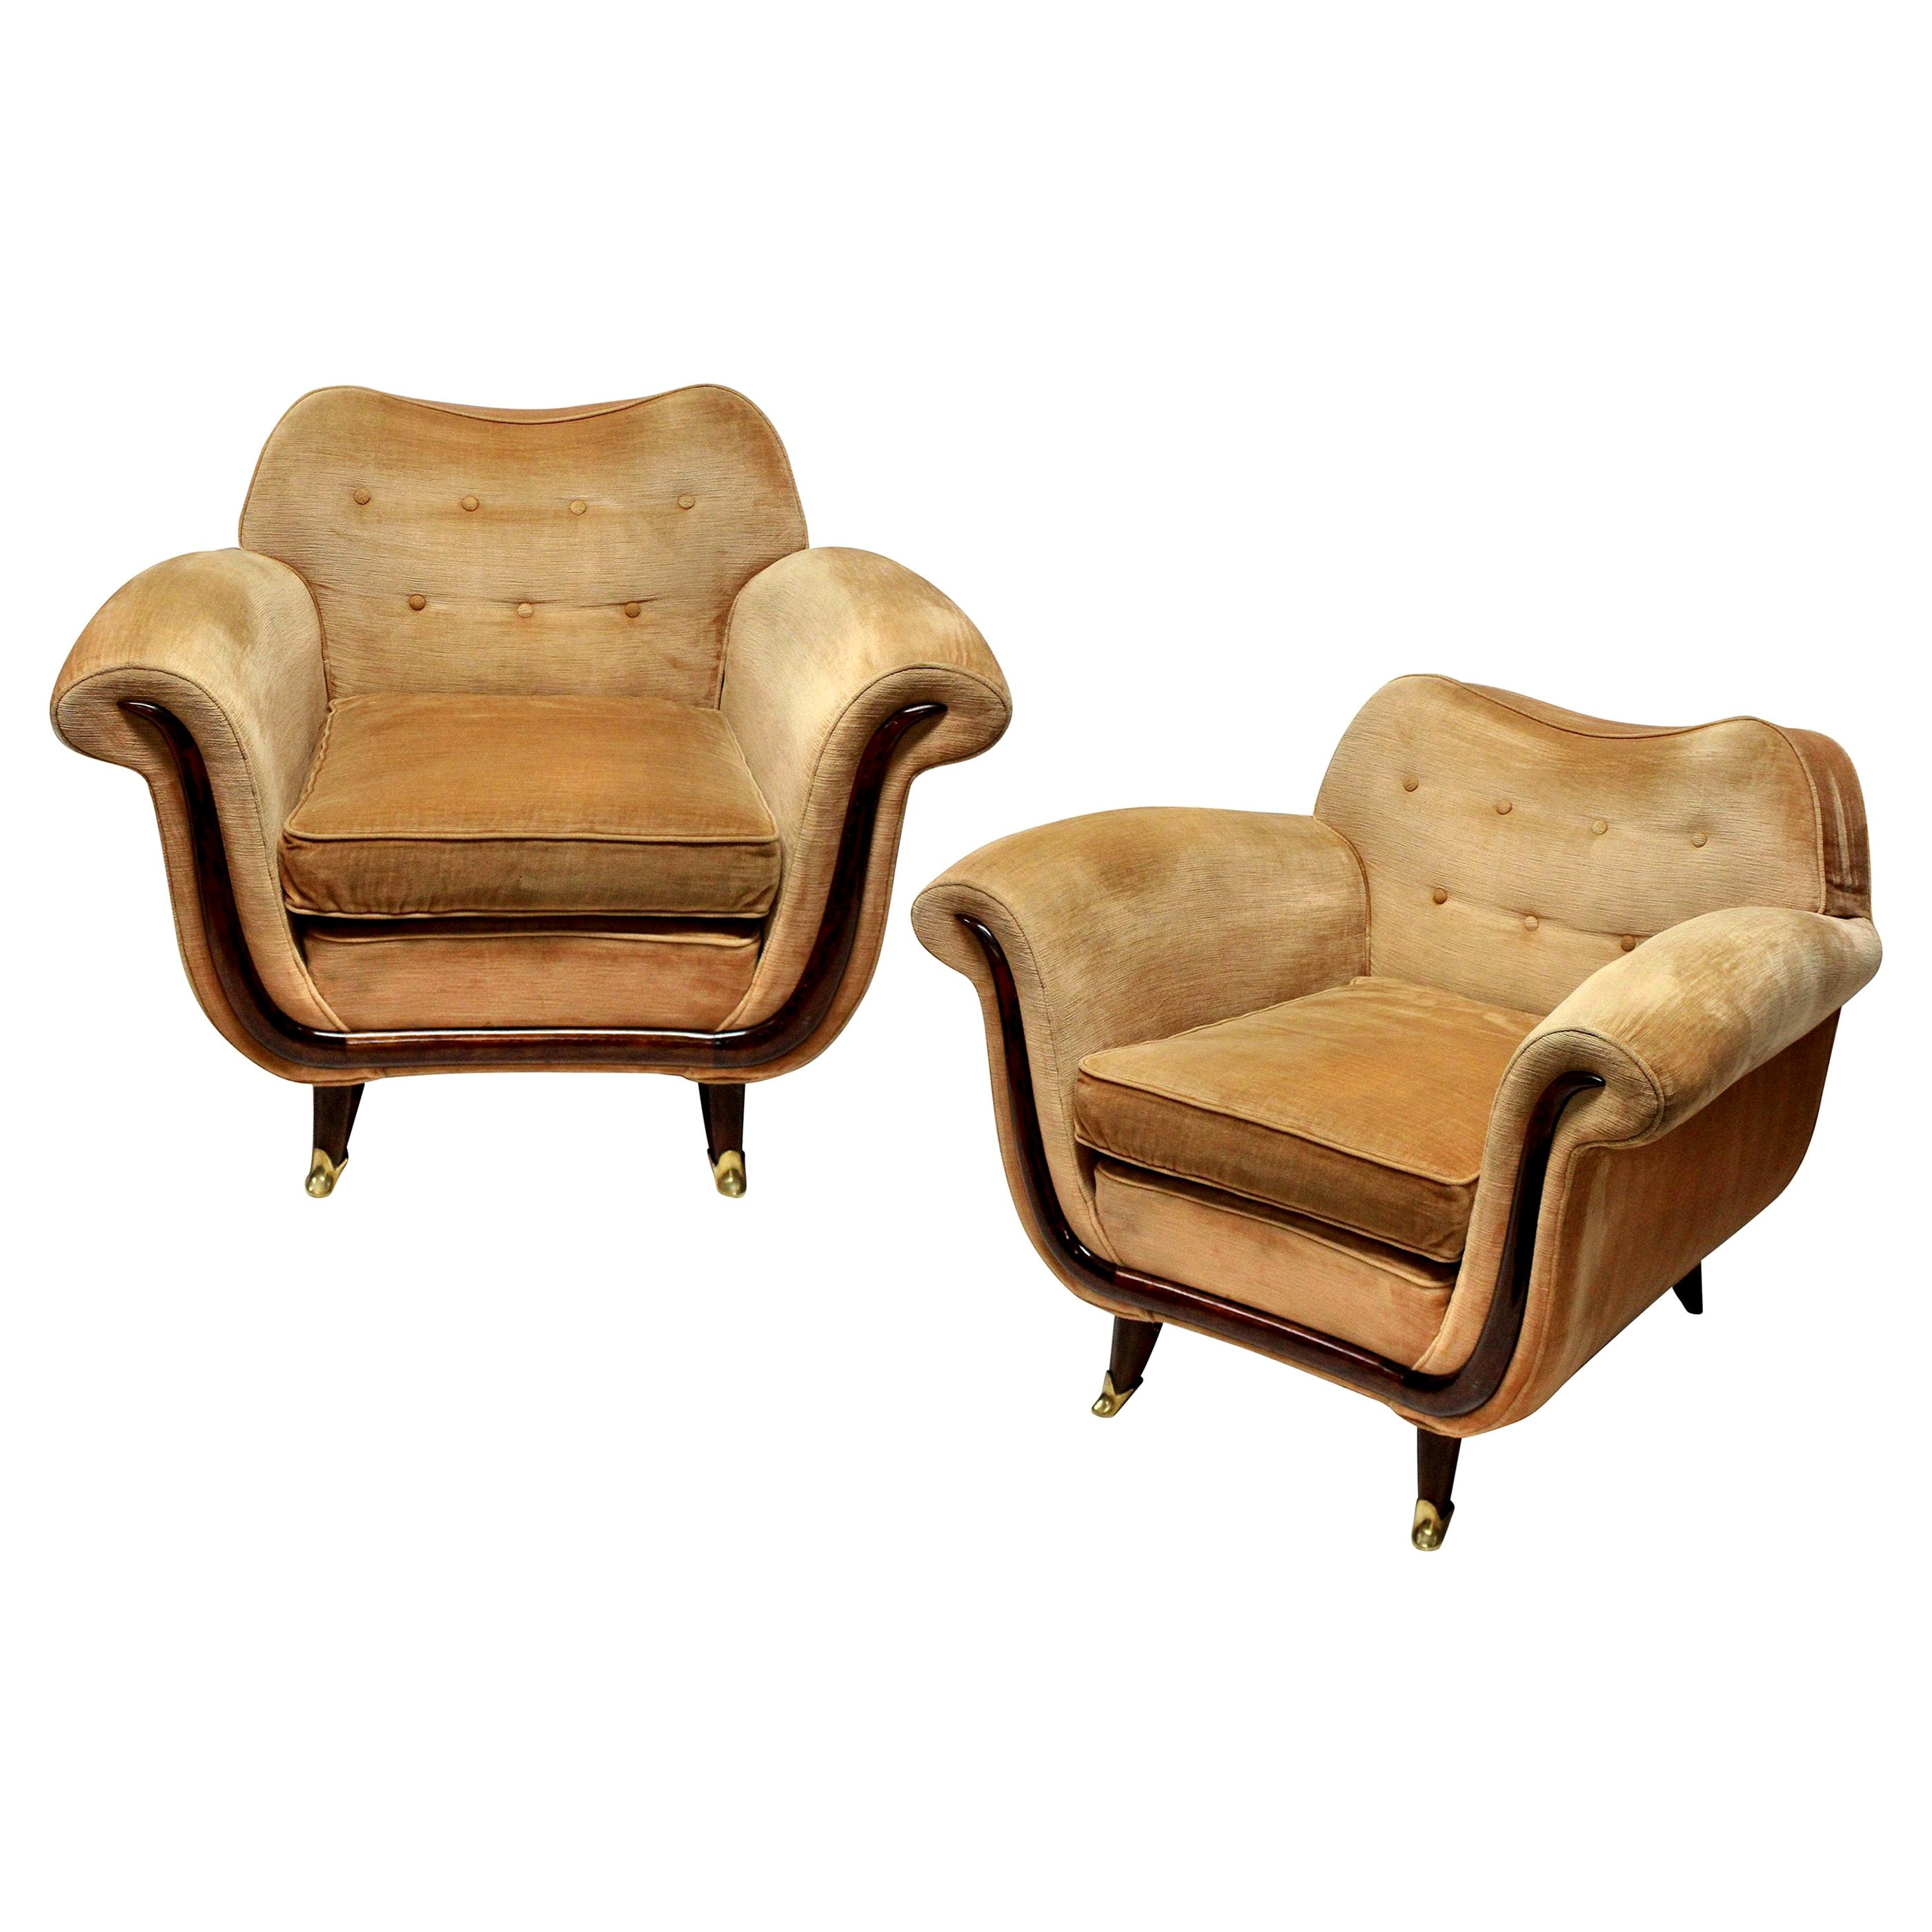 Pair of Large Lounge Chairs by Guglielmo Ulrich